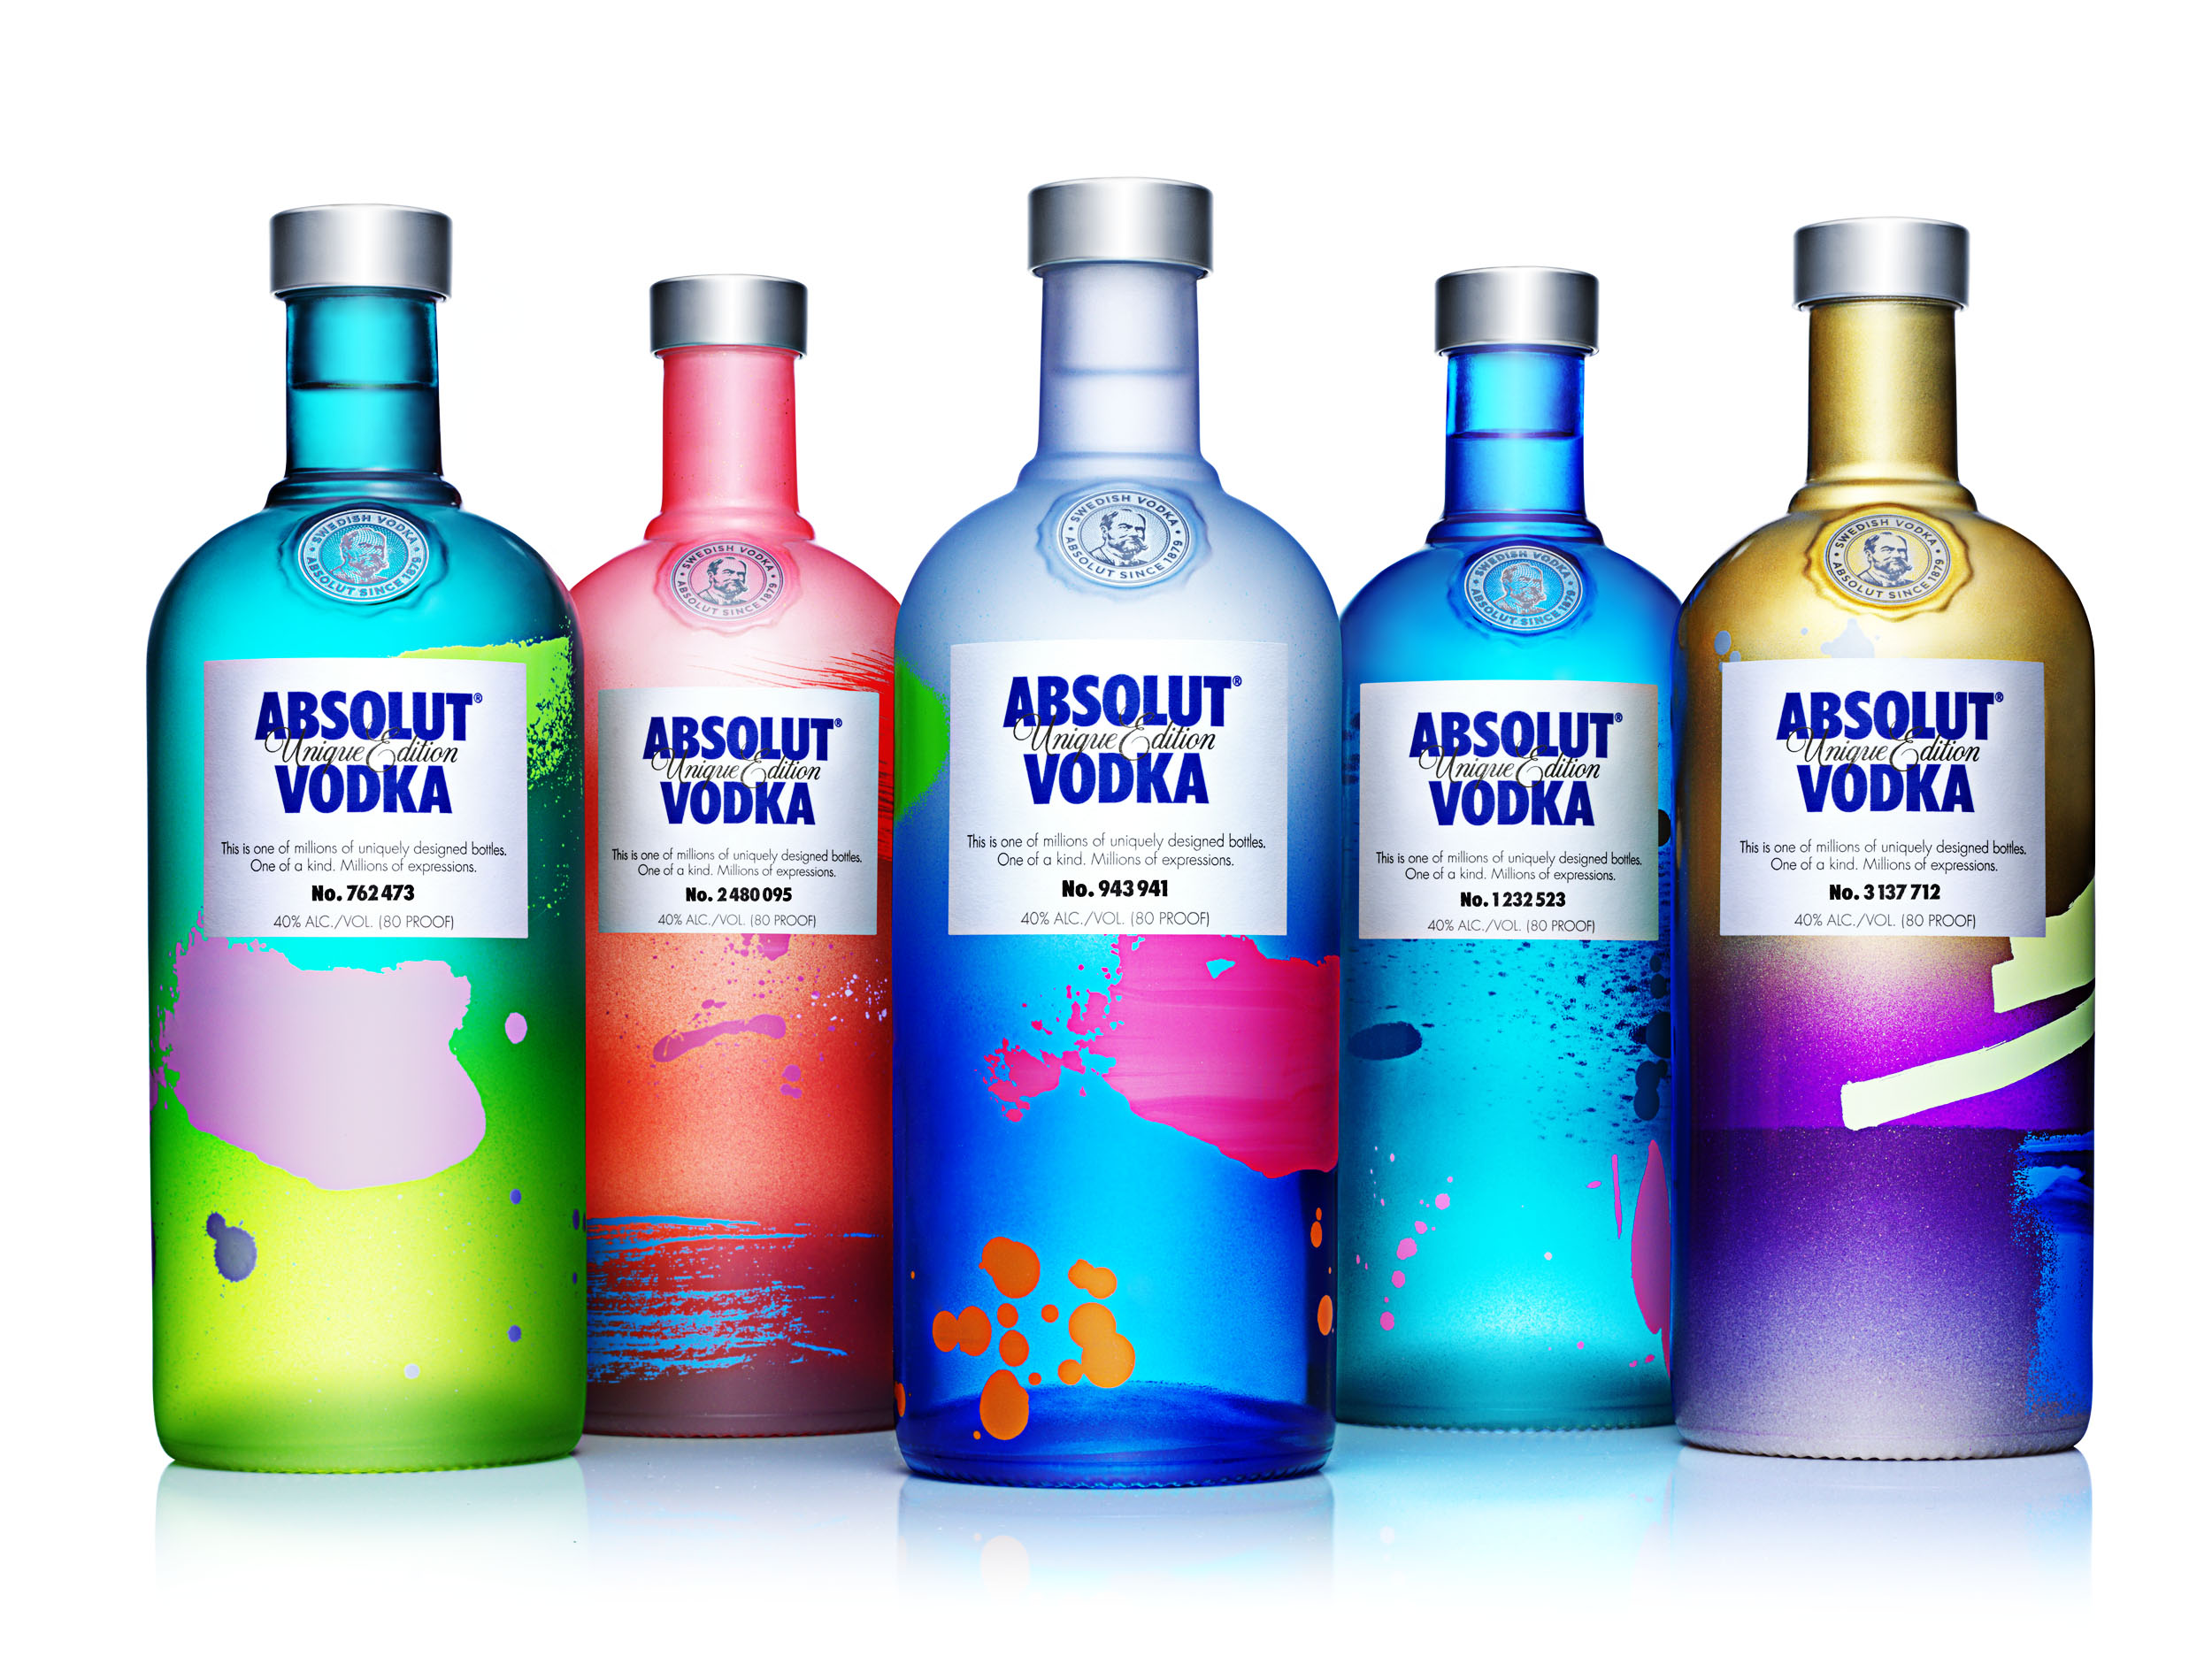 jensmortensen-absolut-vodka-f1a9ff1f